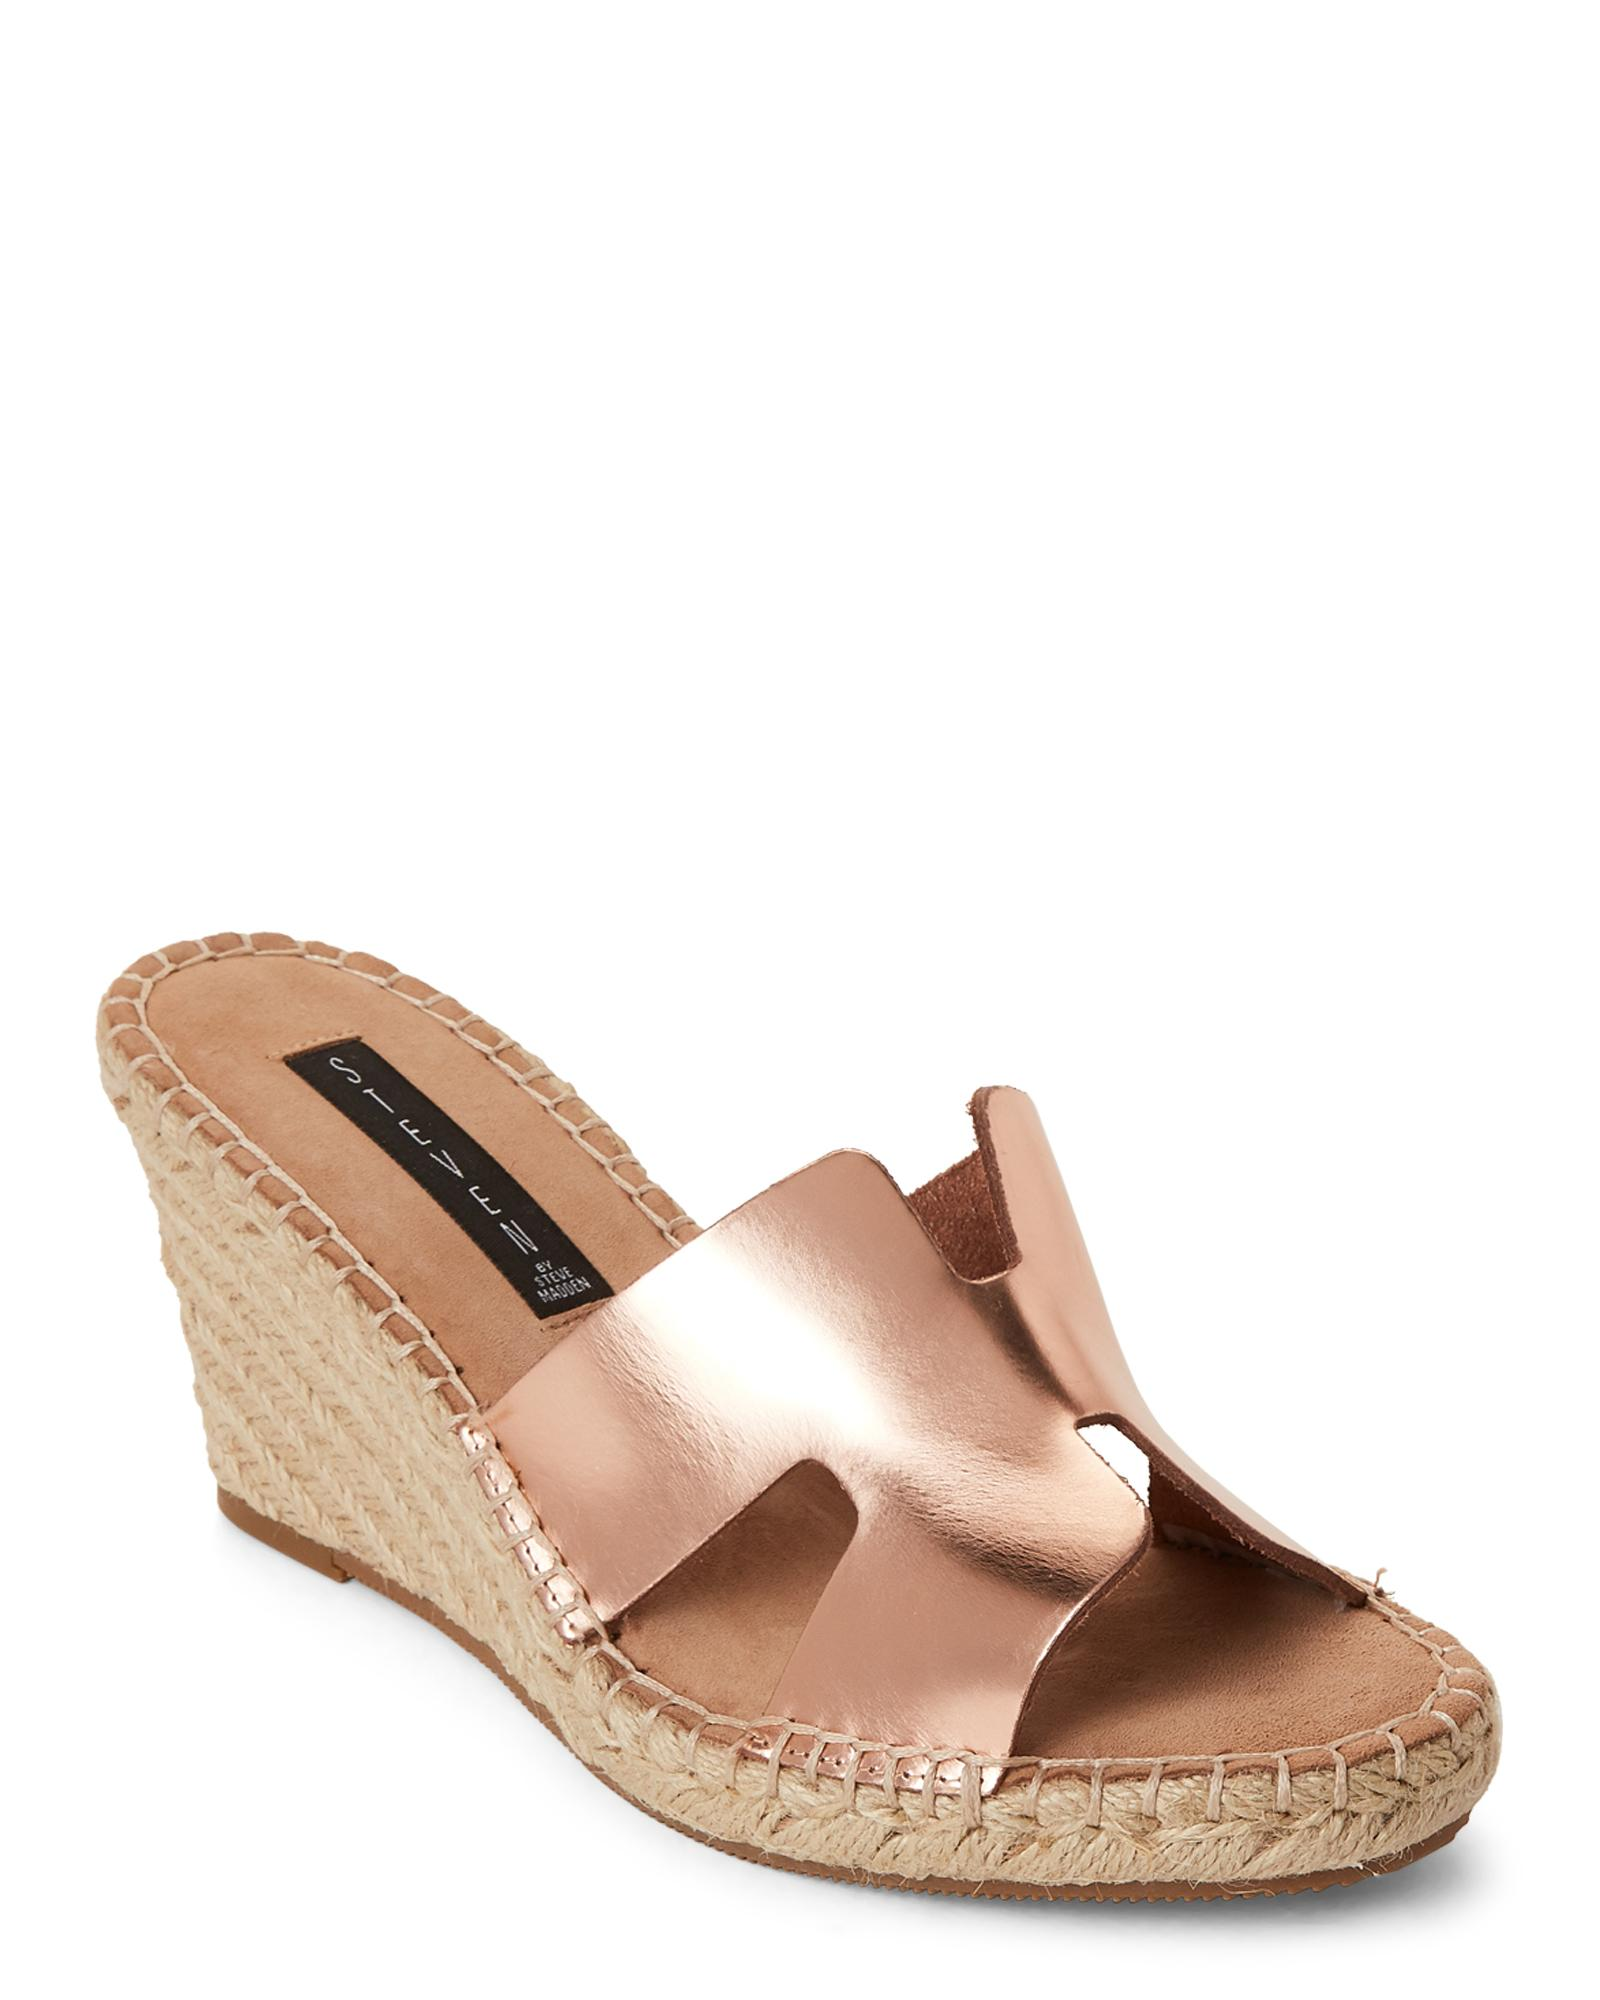 8a5bff6db7f Steven by Steve Madden Red Rose Gold Eryk Wedge Sandals